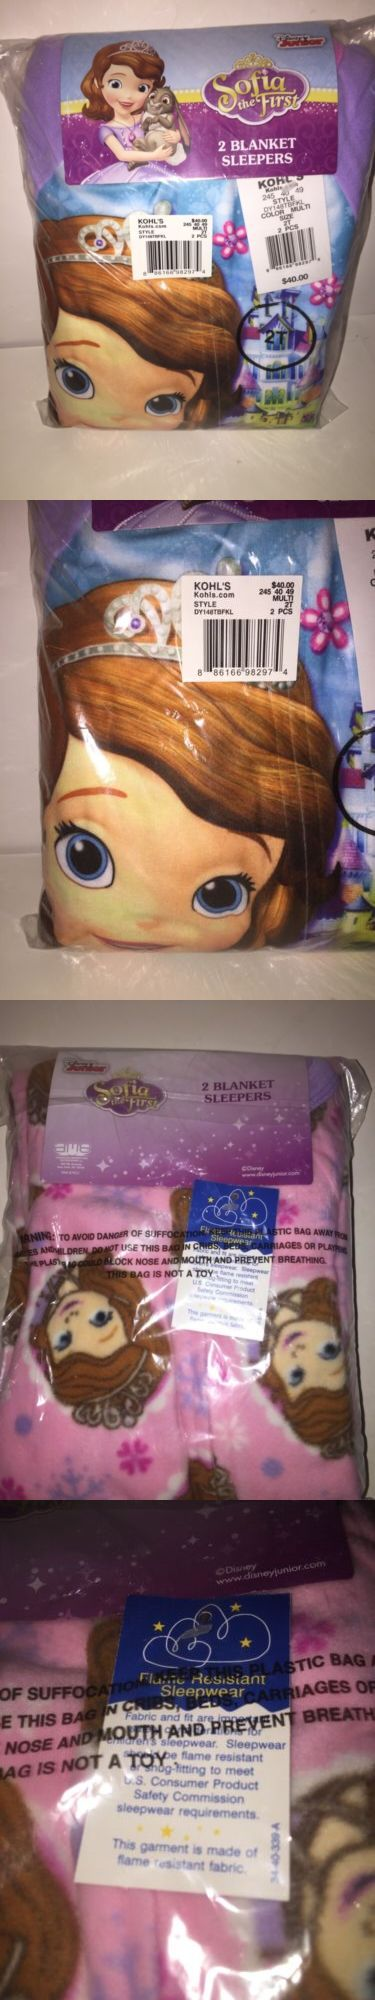 Sleepwear 147215: Disney S Sofia The First Girls 2 Blanket Sleepers Multi-Color Size 2T New Tags -> BUY IT NOW ONLY: $30 on eBay!